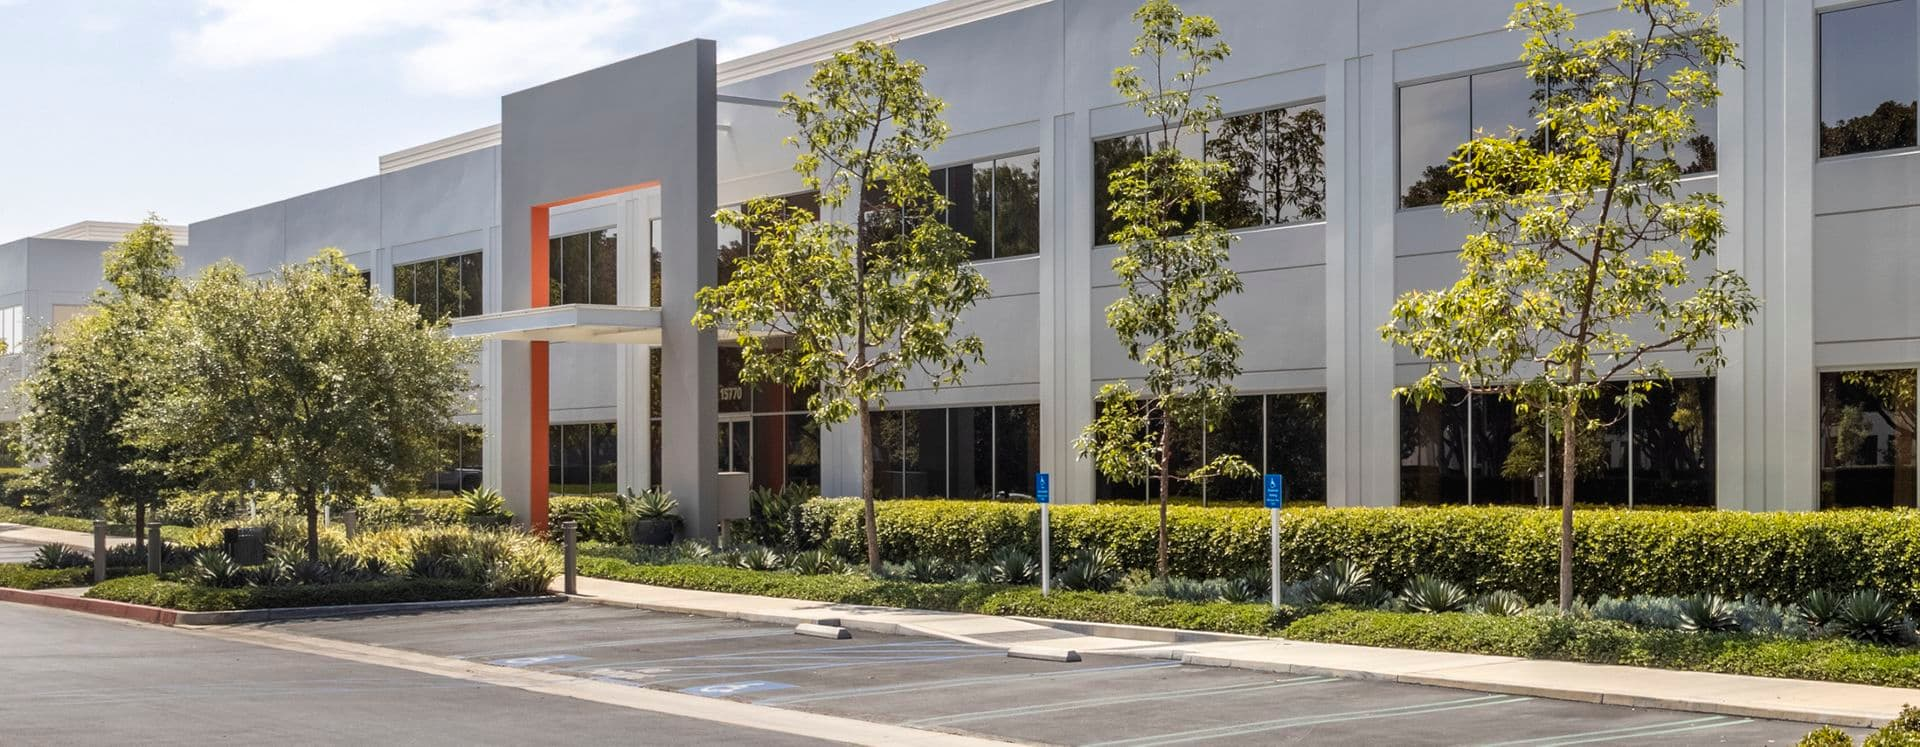 Exterior view photography of 15770 Laguna Canyon Road in Irvine, CA.